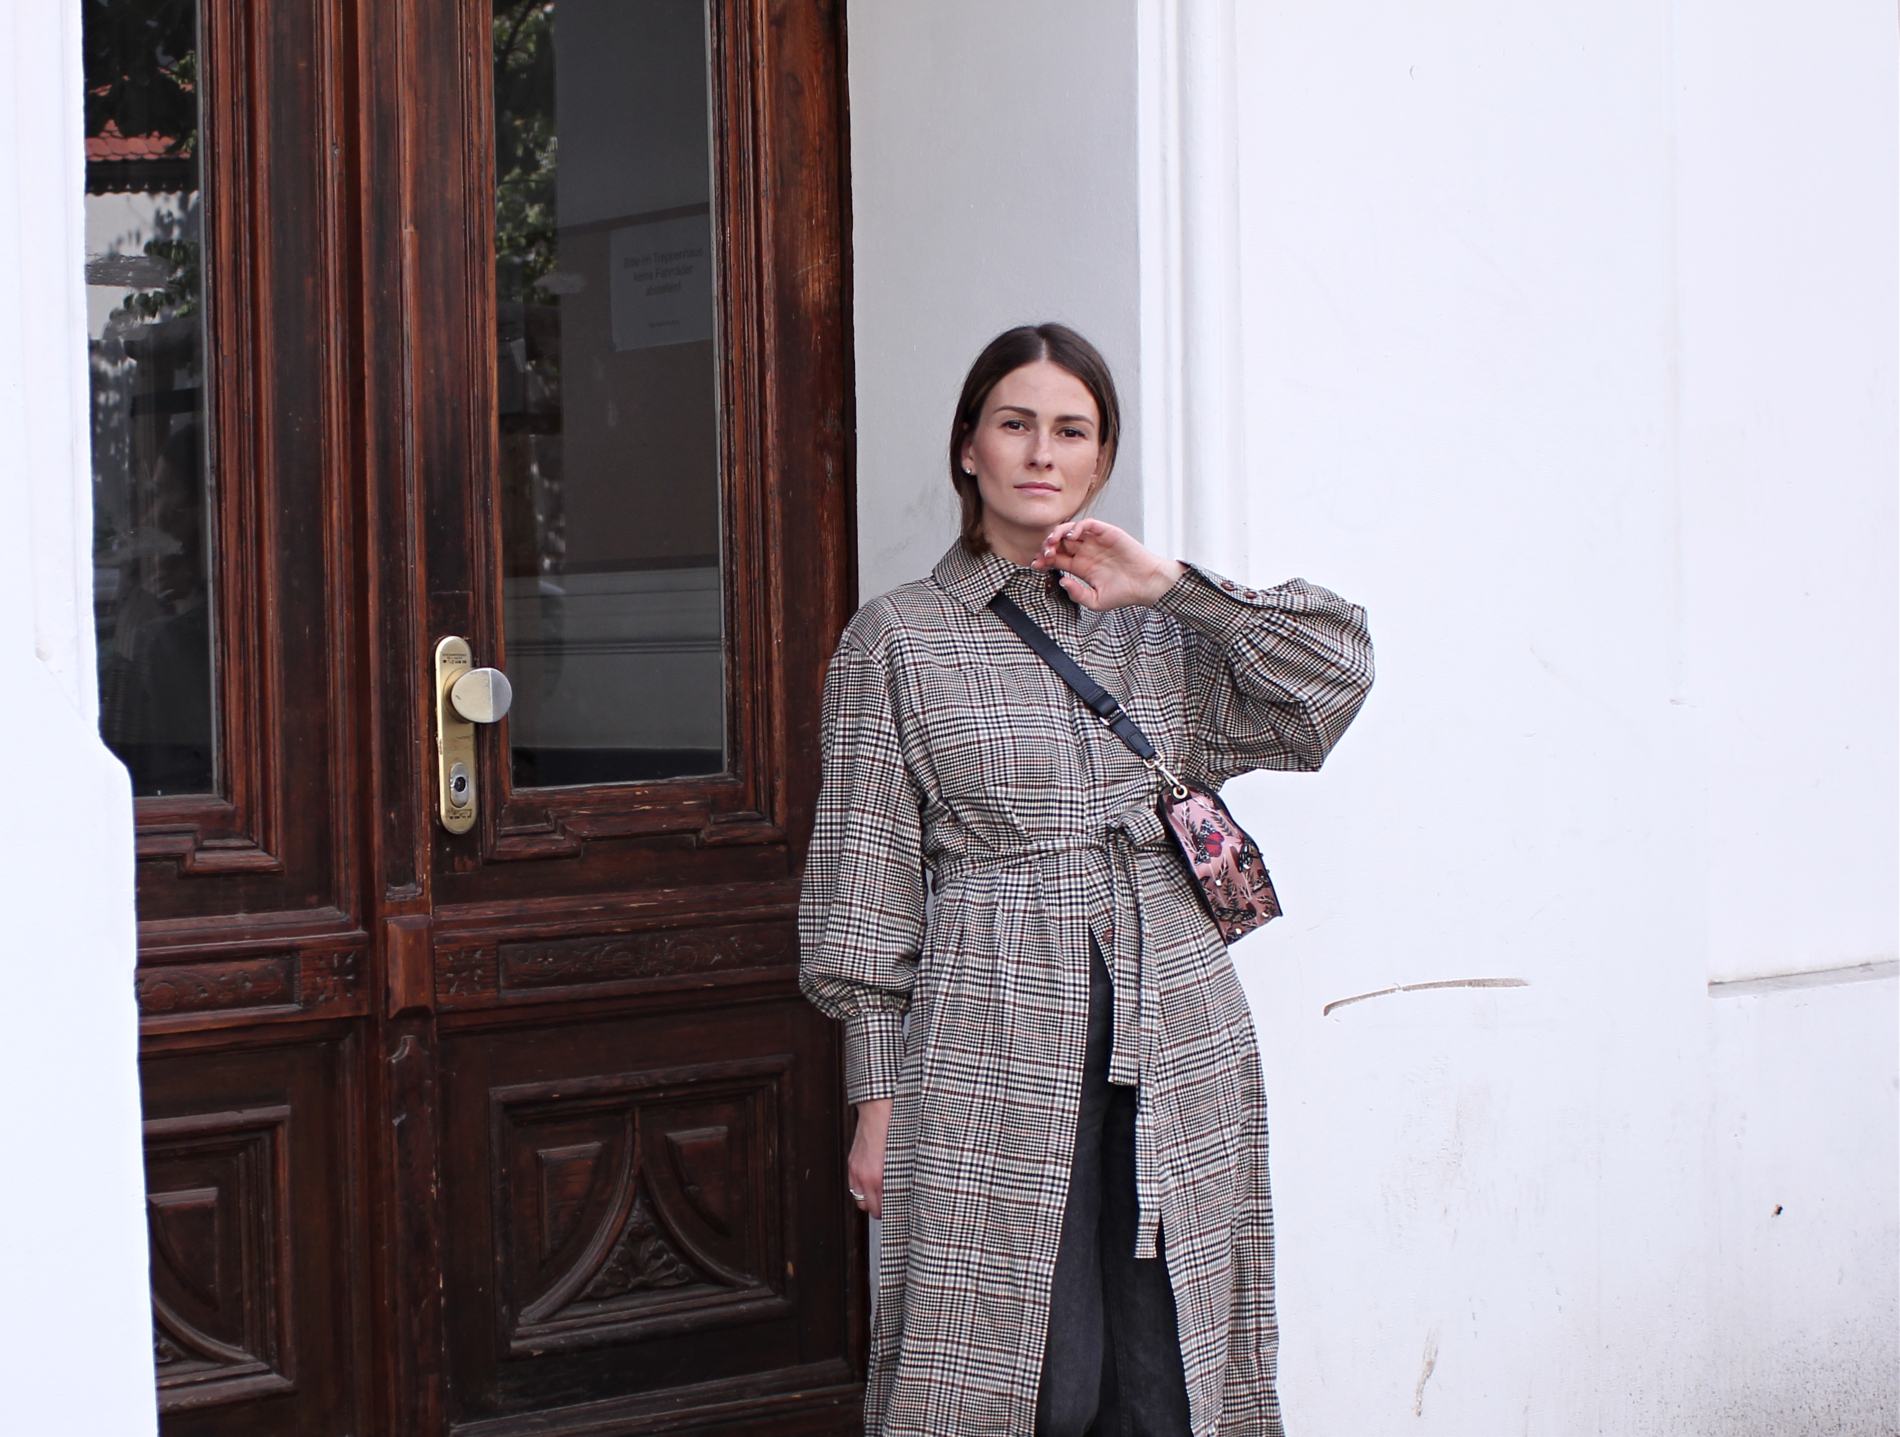 annaporter-checked-coat-hm-fashionblogger-outfit-3.jpg